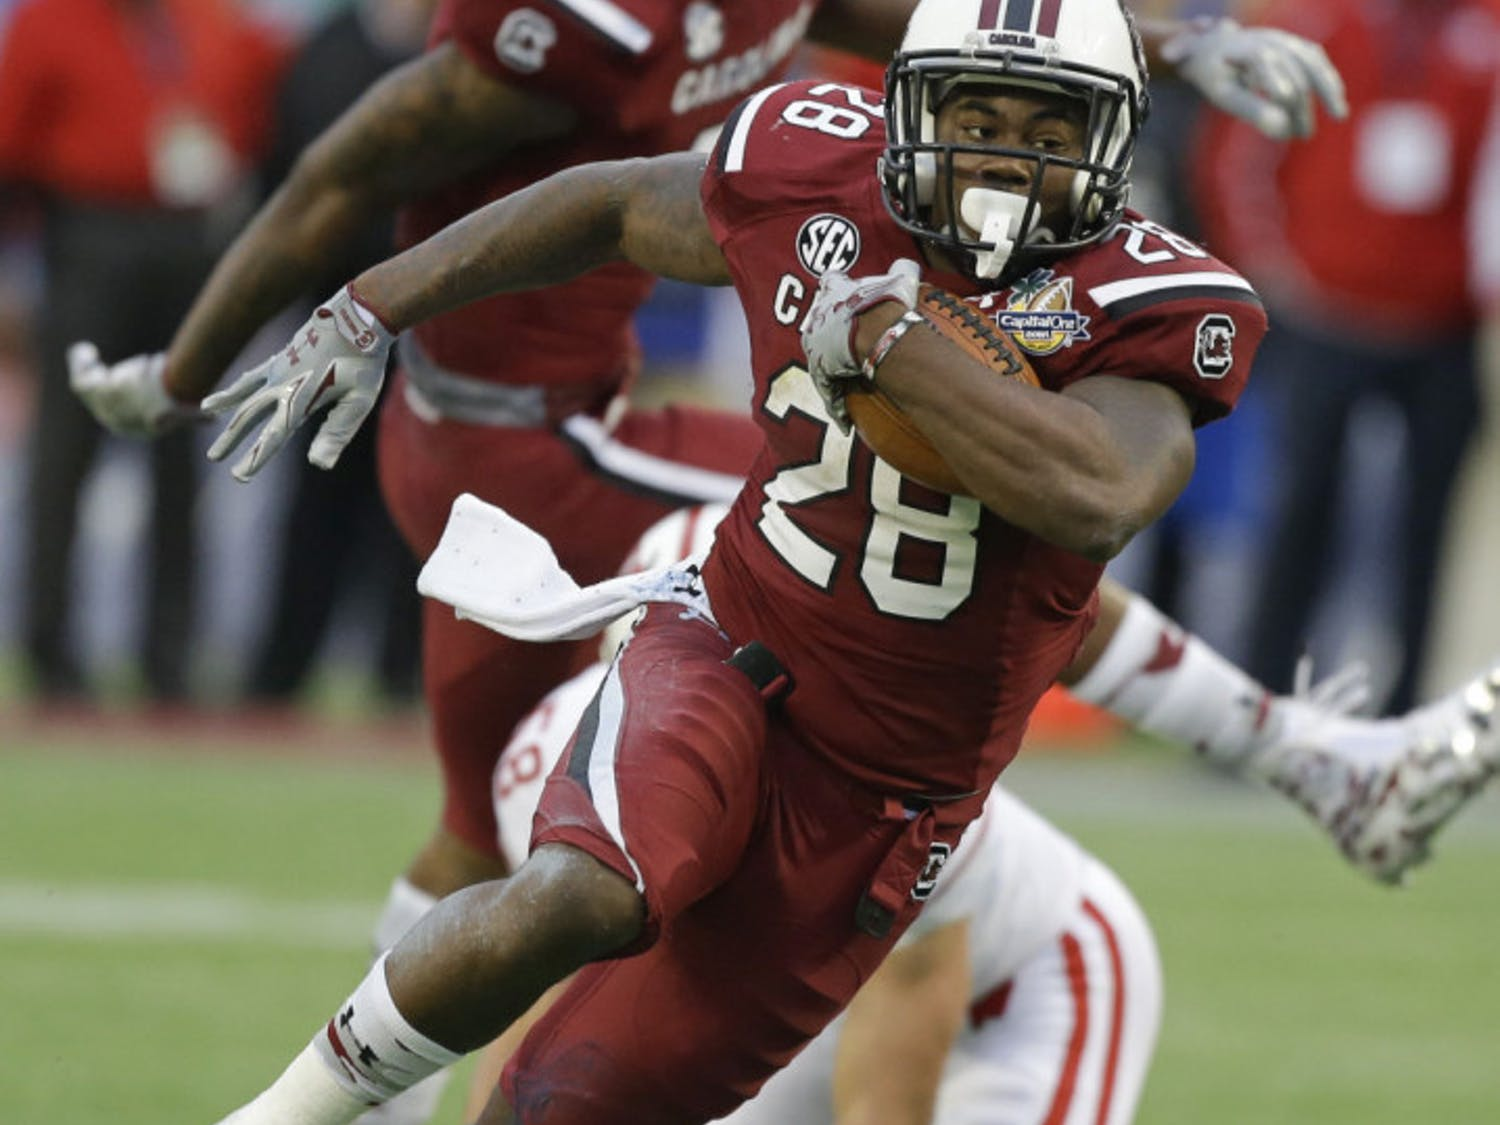 In this Jan. 1, 2014, file photo, South Carolina running back Mike Davis (28) gains yardage against Wisconsin during the second half of the Capital One Bowl NCAA college football game in Orlando, Fla. Steve Spurrier says 1,000-yard rusher Mike Davis hadn't practiced last week and might not be ready when the ninth-ranked Gamecocks open the season against No. 21 Texas A&M tonight.